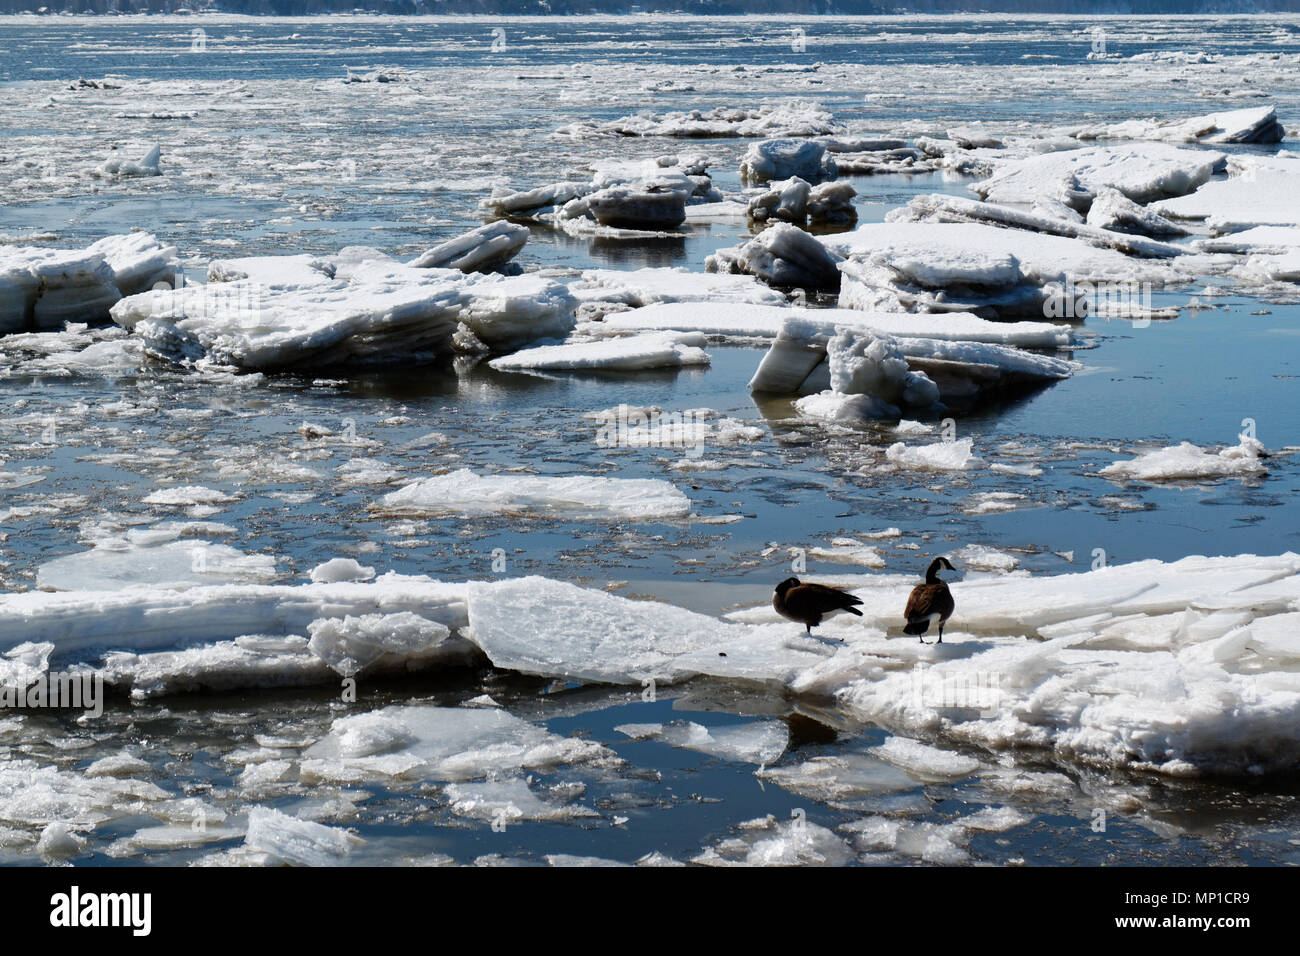 Two Canada geese on ice floes on the St Lawrence River in Quebec City, Quebec, Canada - Stock Image